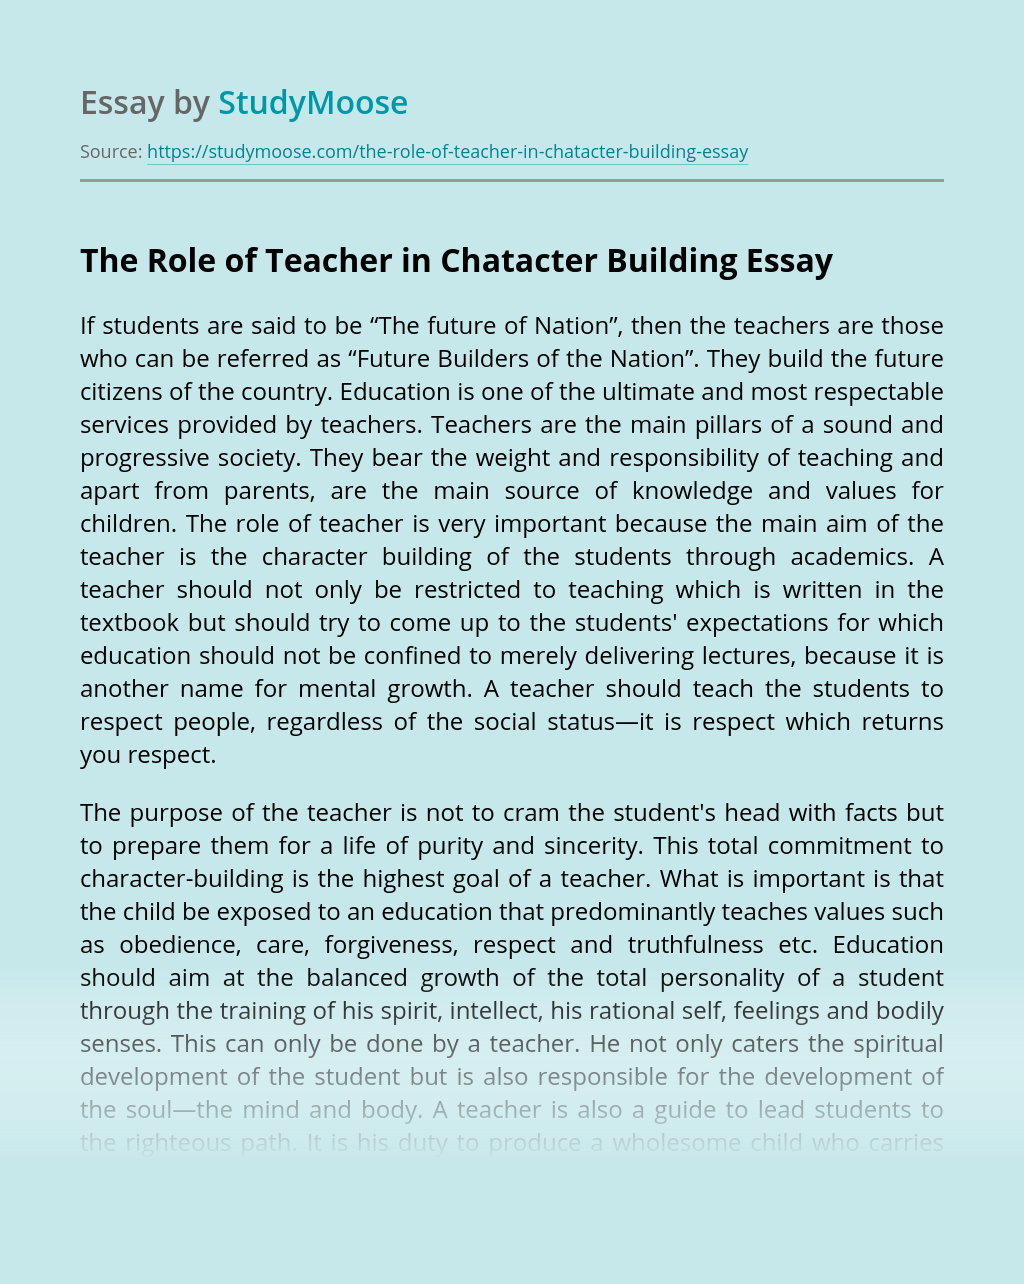 The Role of Teacher in Chatacter Building